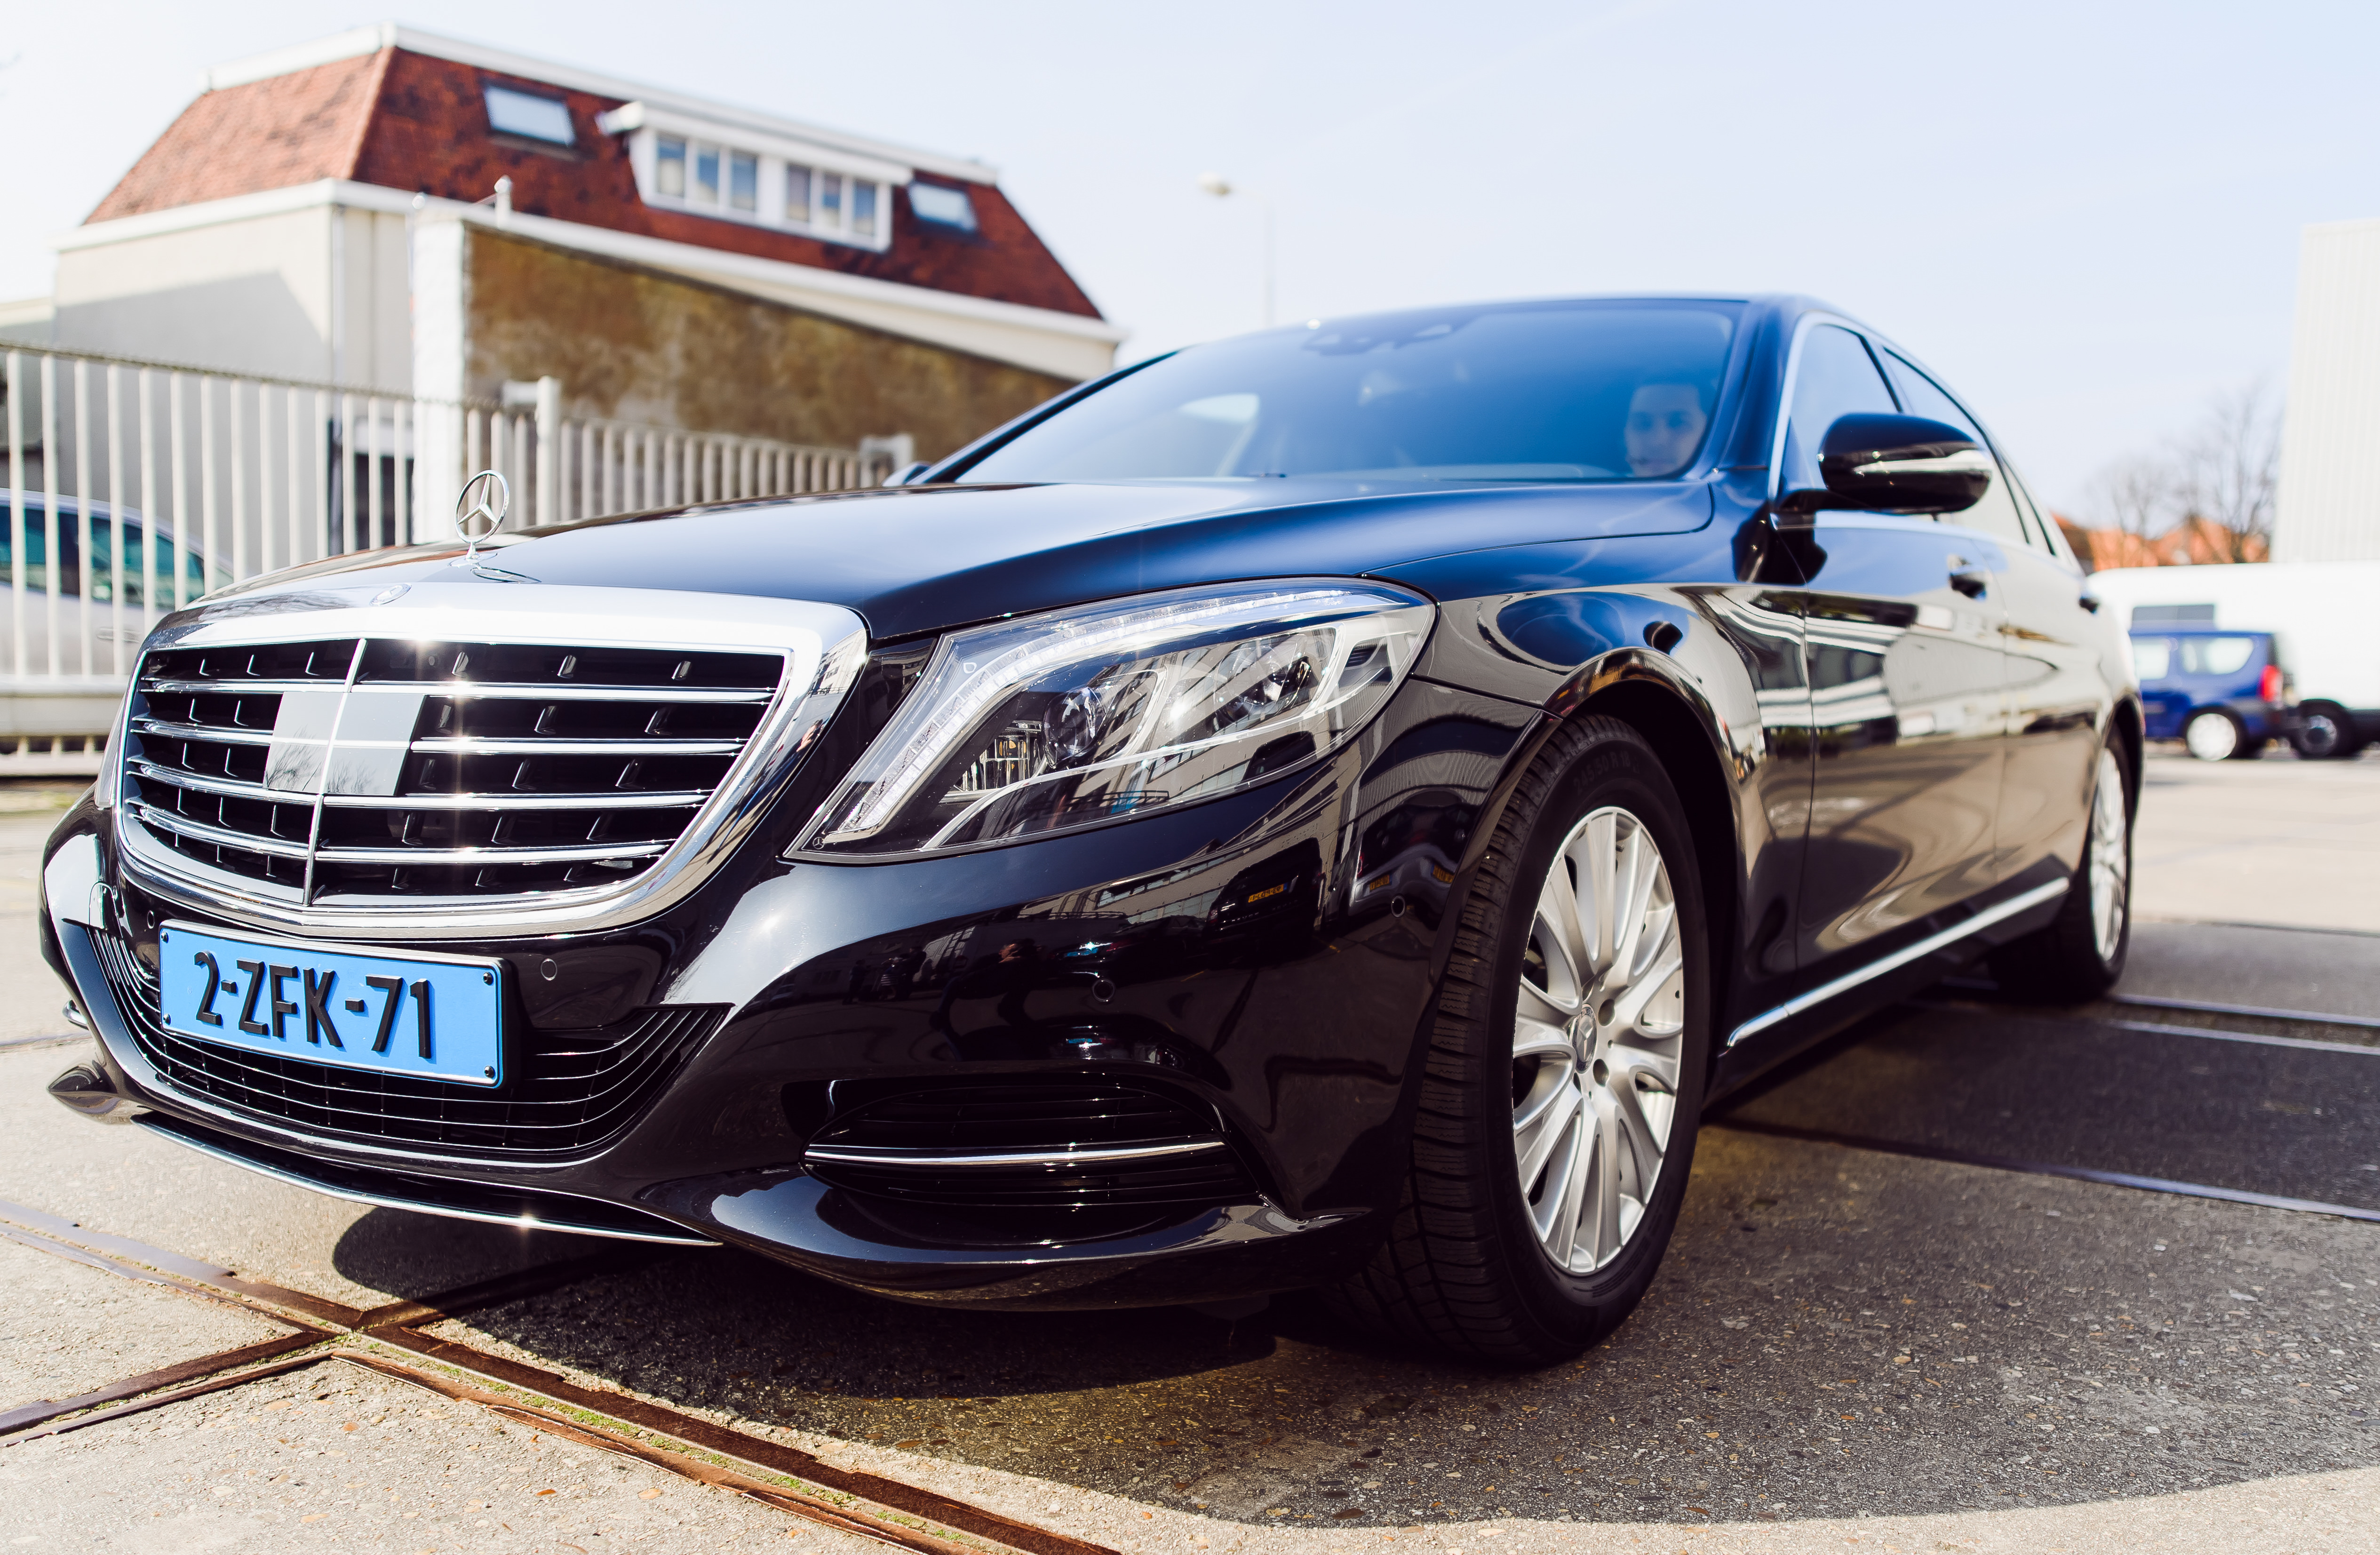 Mercedes s class limousine ready for a private transfer